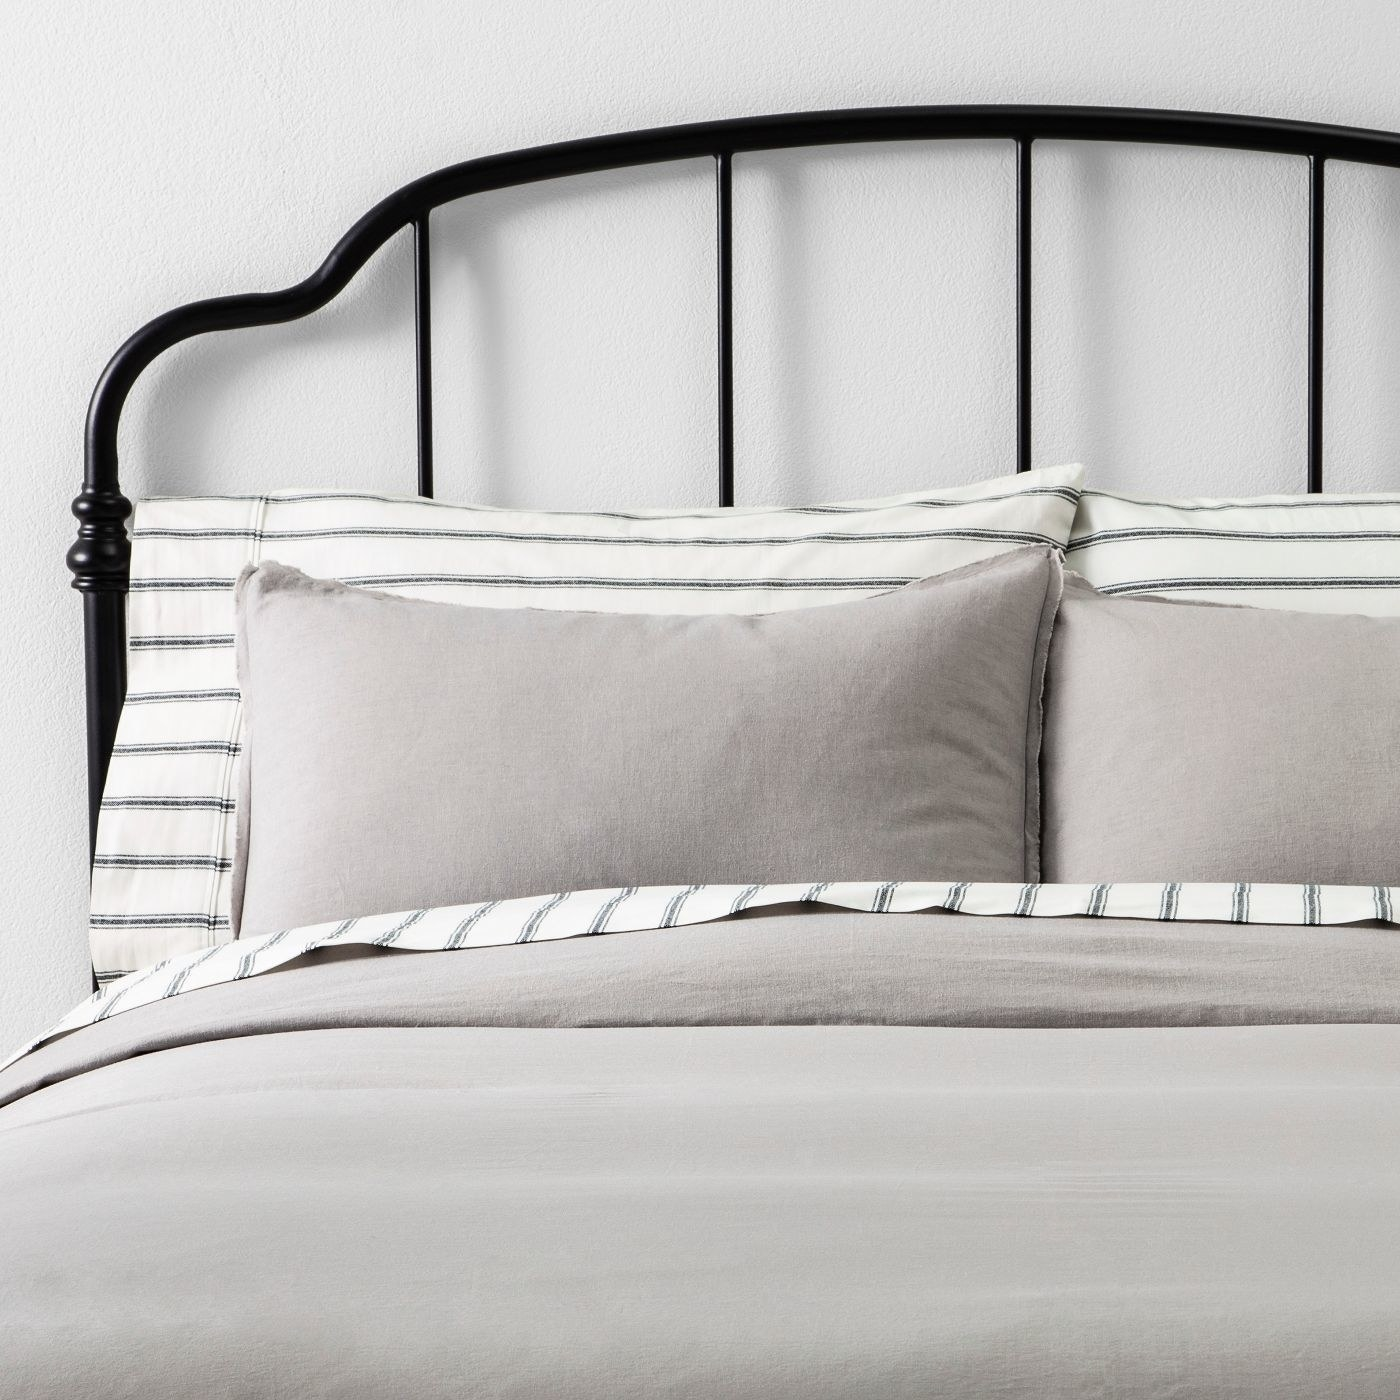 A grey duvet and matching grey sham pillow set